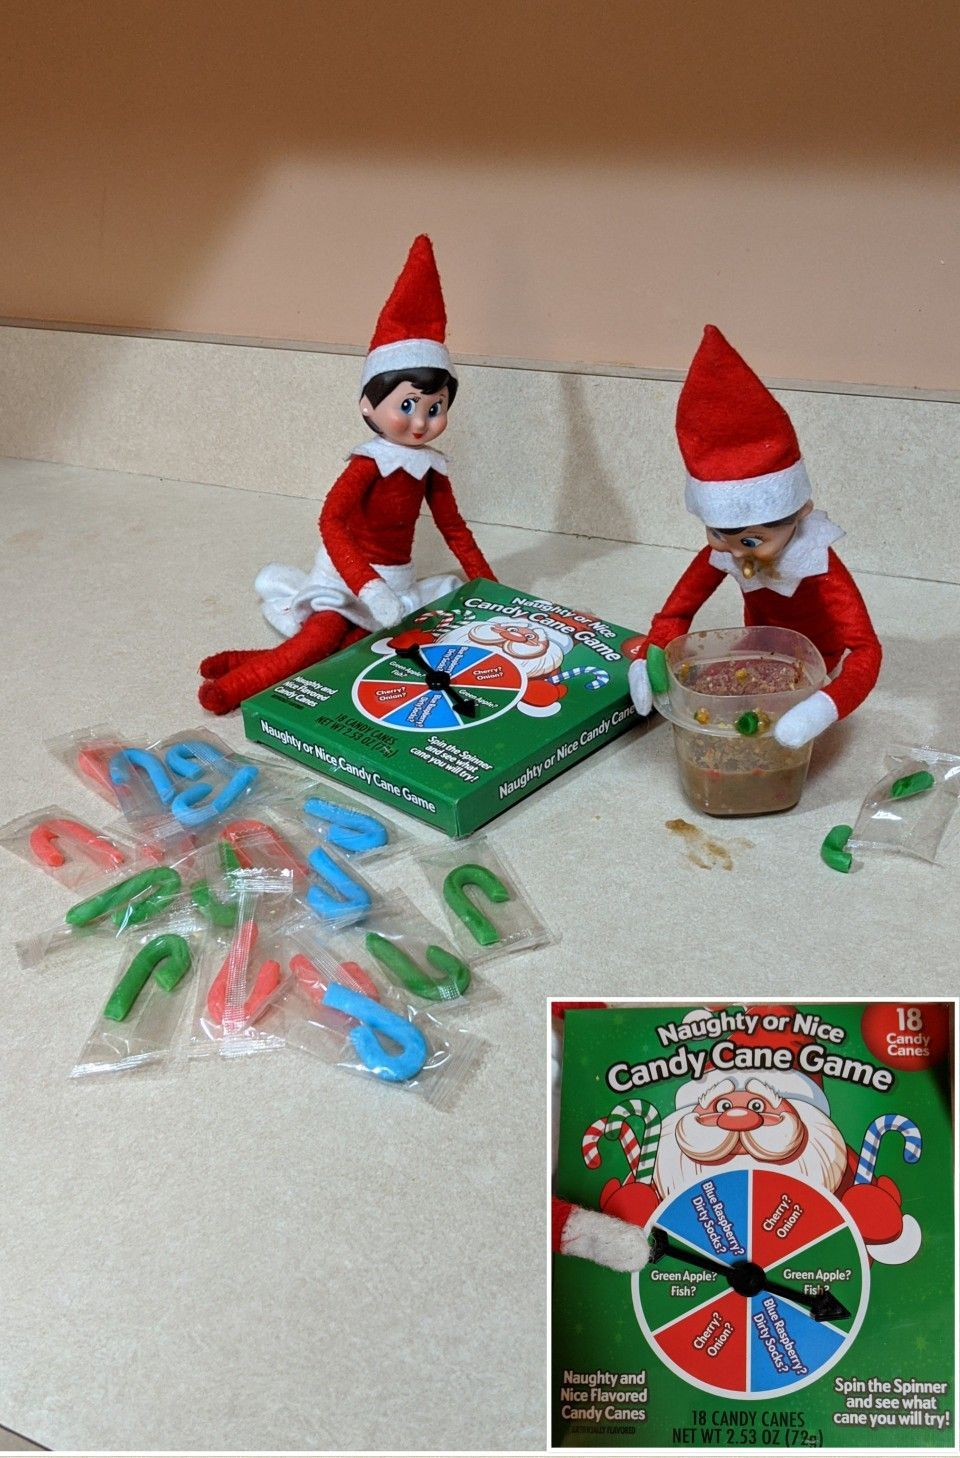 Elf on the shelf play naughty or nice candy cane game (The